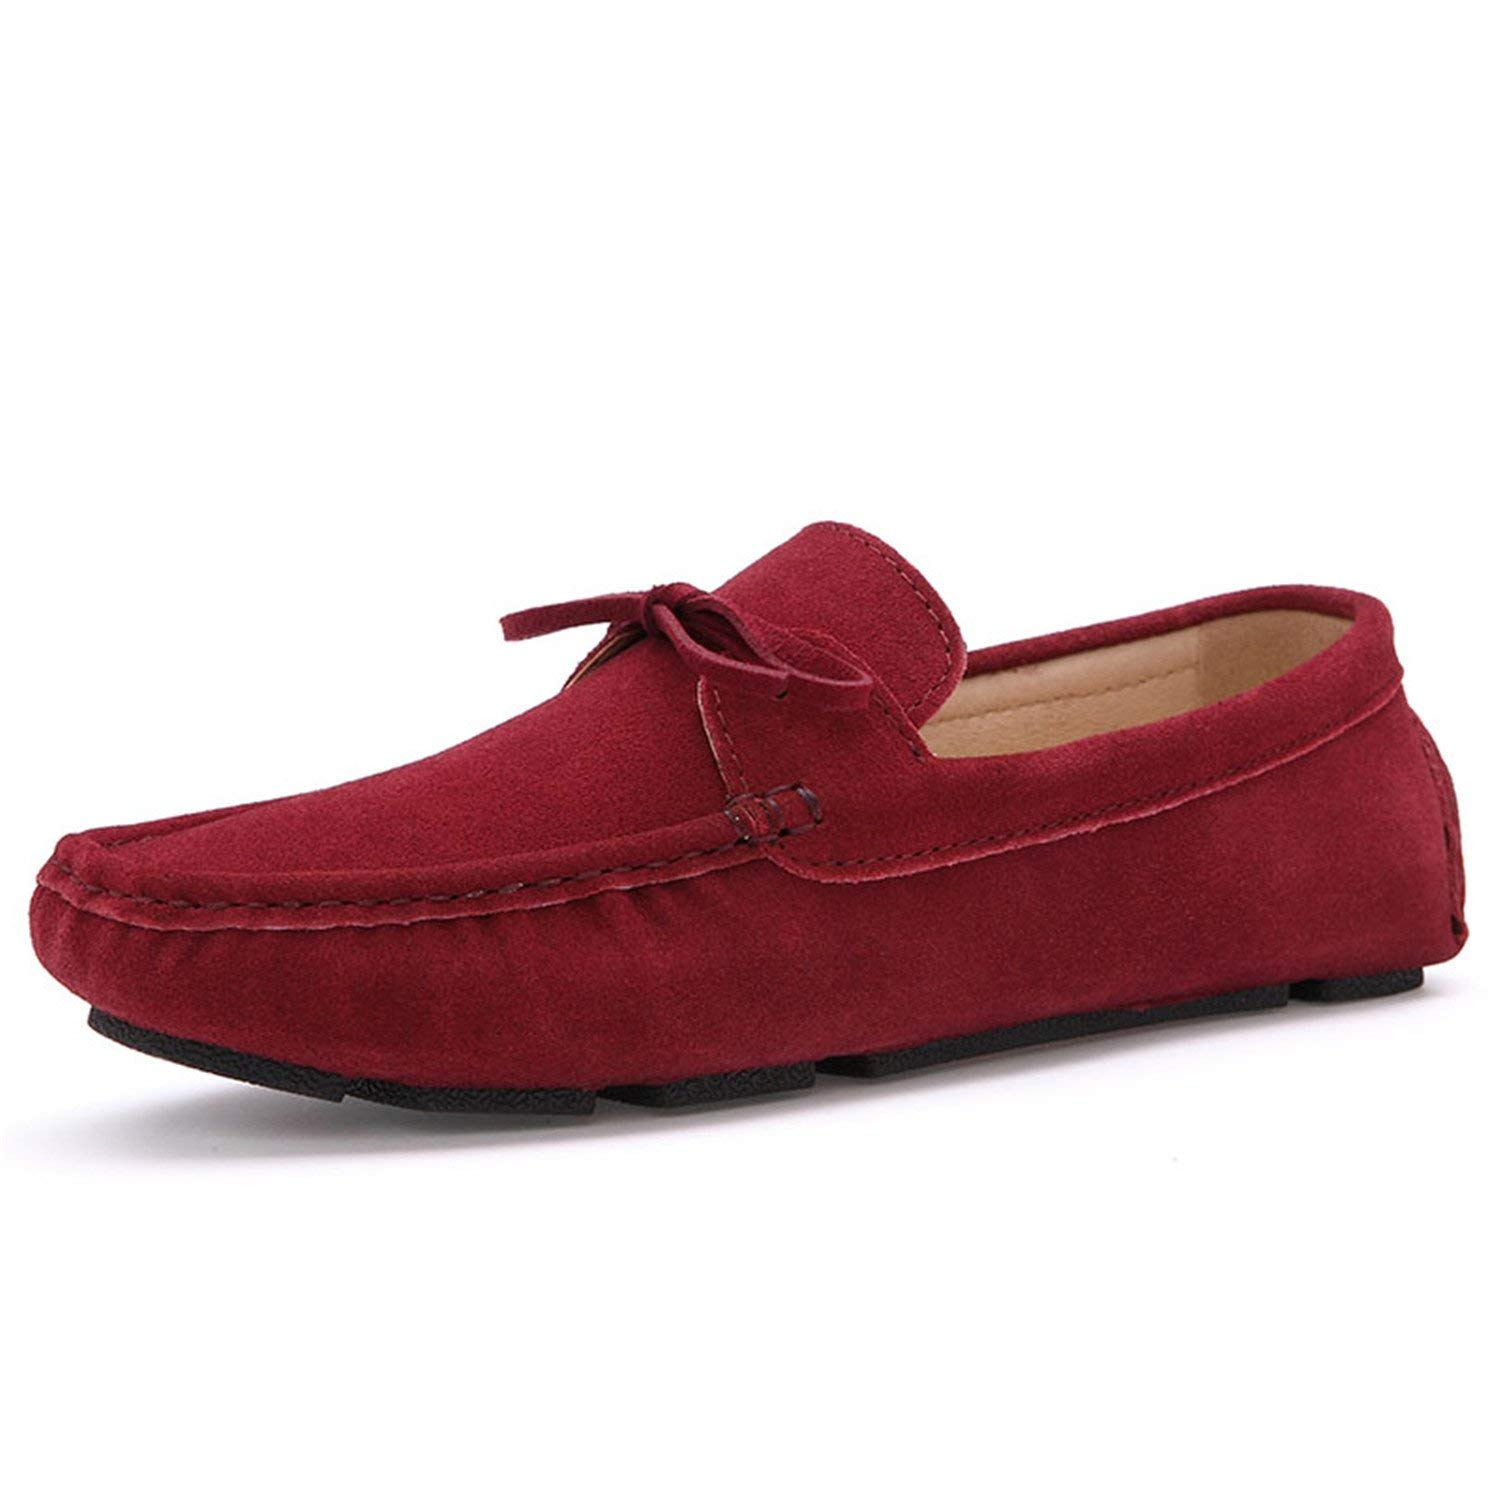 d5baa7bbfb5 Get Quotations · Orcan Bluce Spring Autumn Men Loafers Casual Suede Leather  Shoes Navy Blue Slip on Shoes